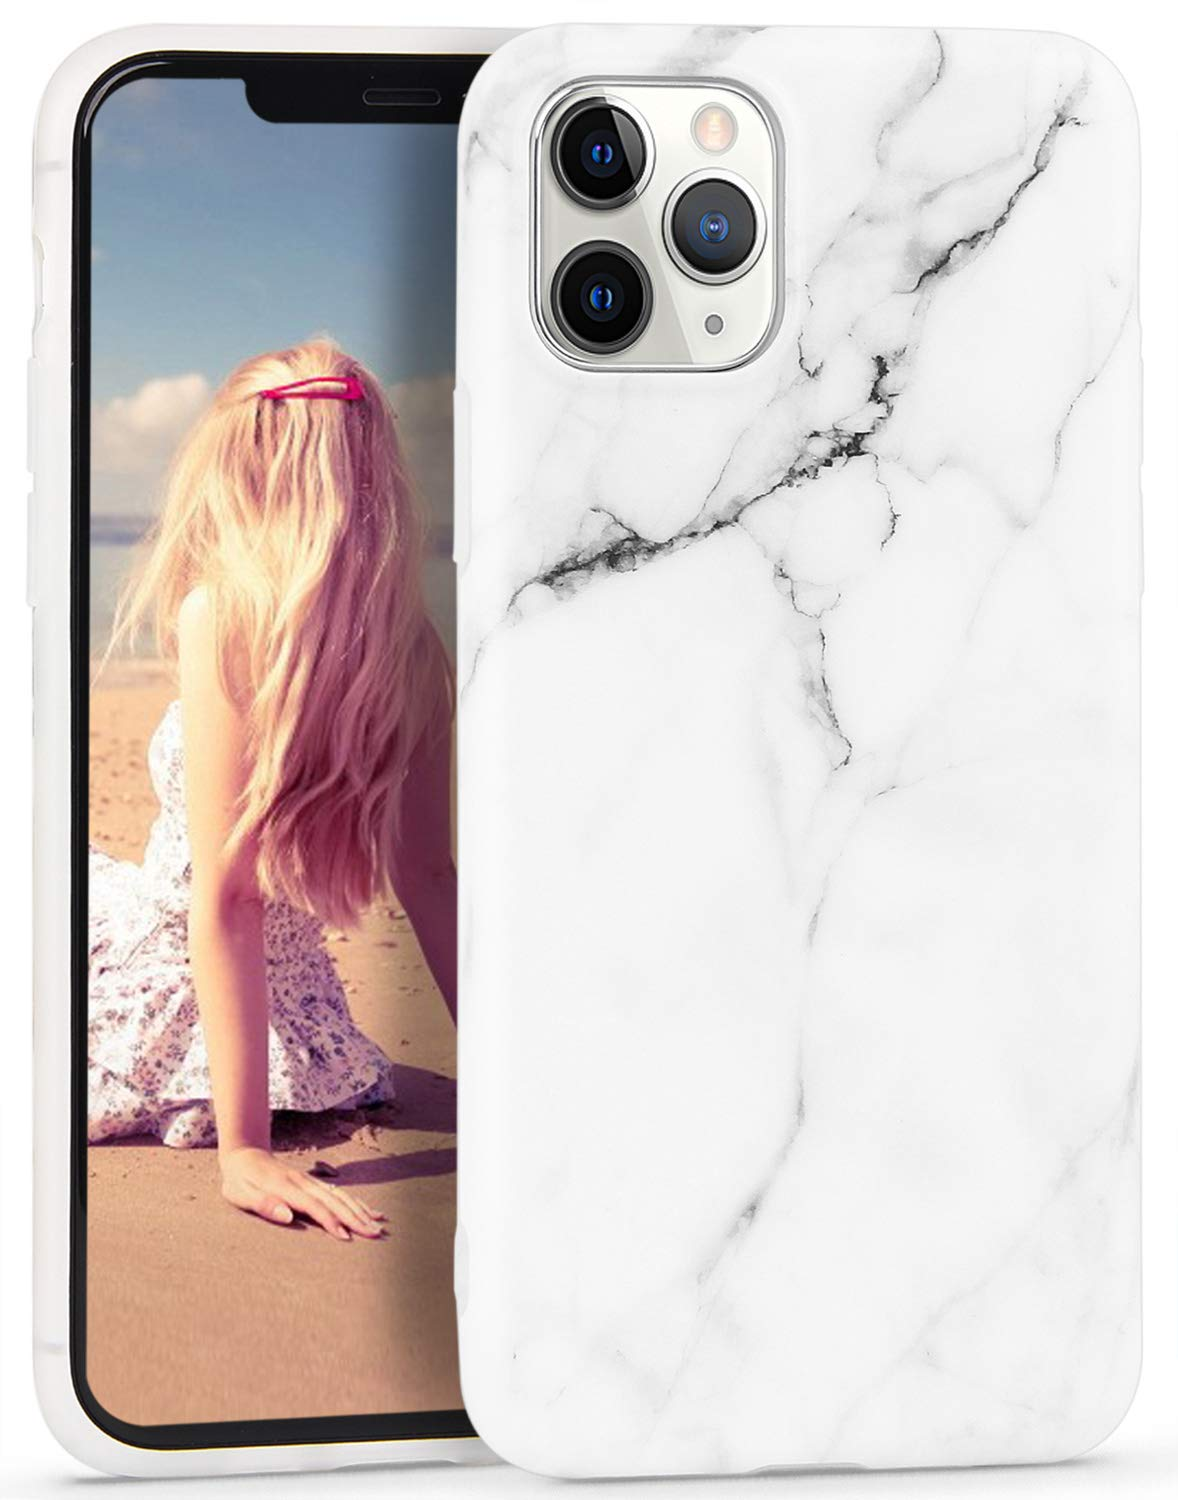 Imikoko iPhone 11 Pro Case Marble, Slim Soft FlexibleTPU Matte Marble Pattern Protective Shockproof Case Cover for iPhone 11 Pro 5.8 inch